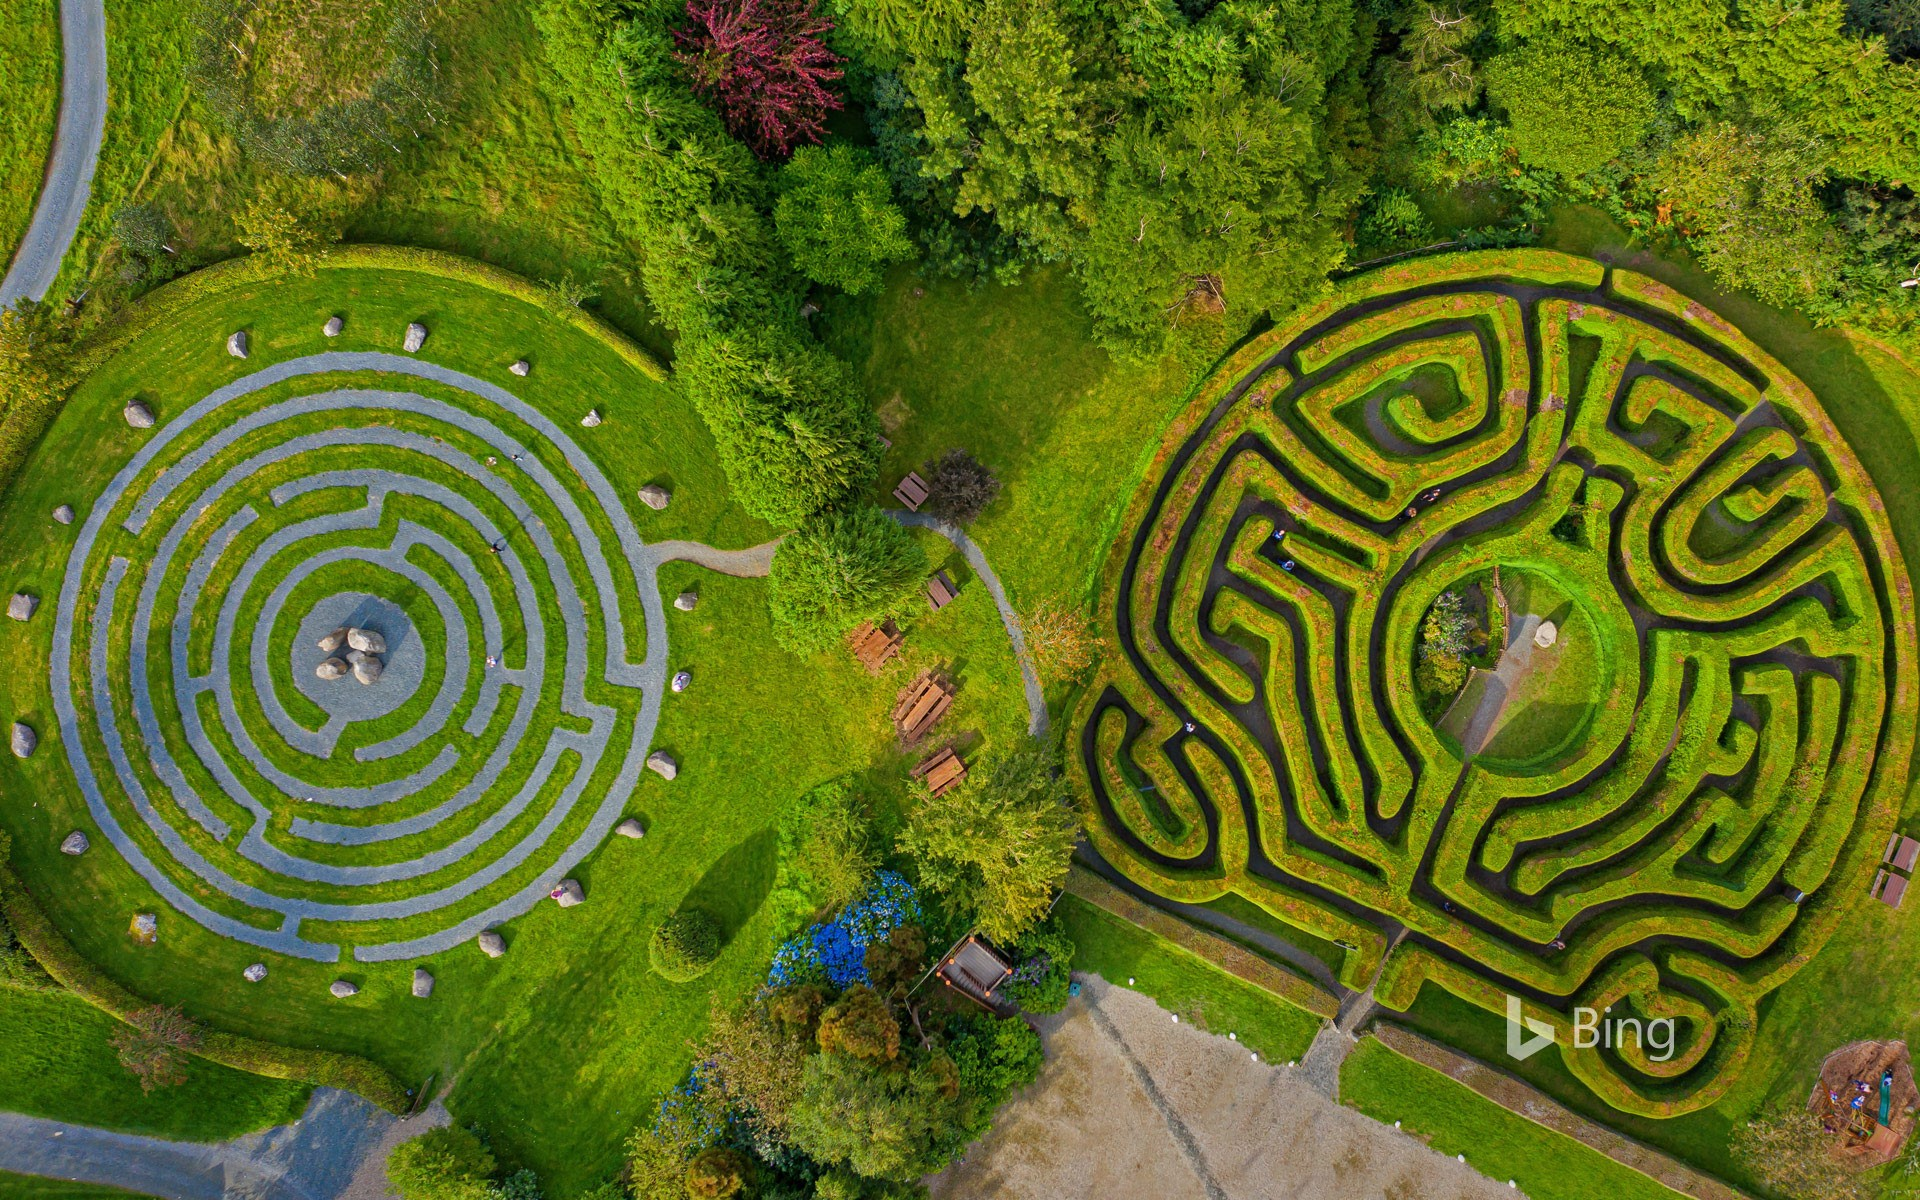 Greenan Maze in County Wicklow, Ireland